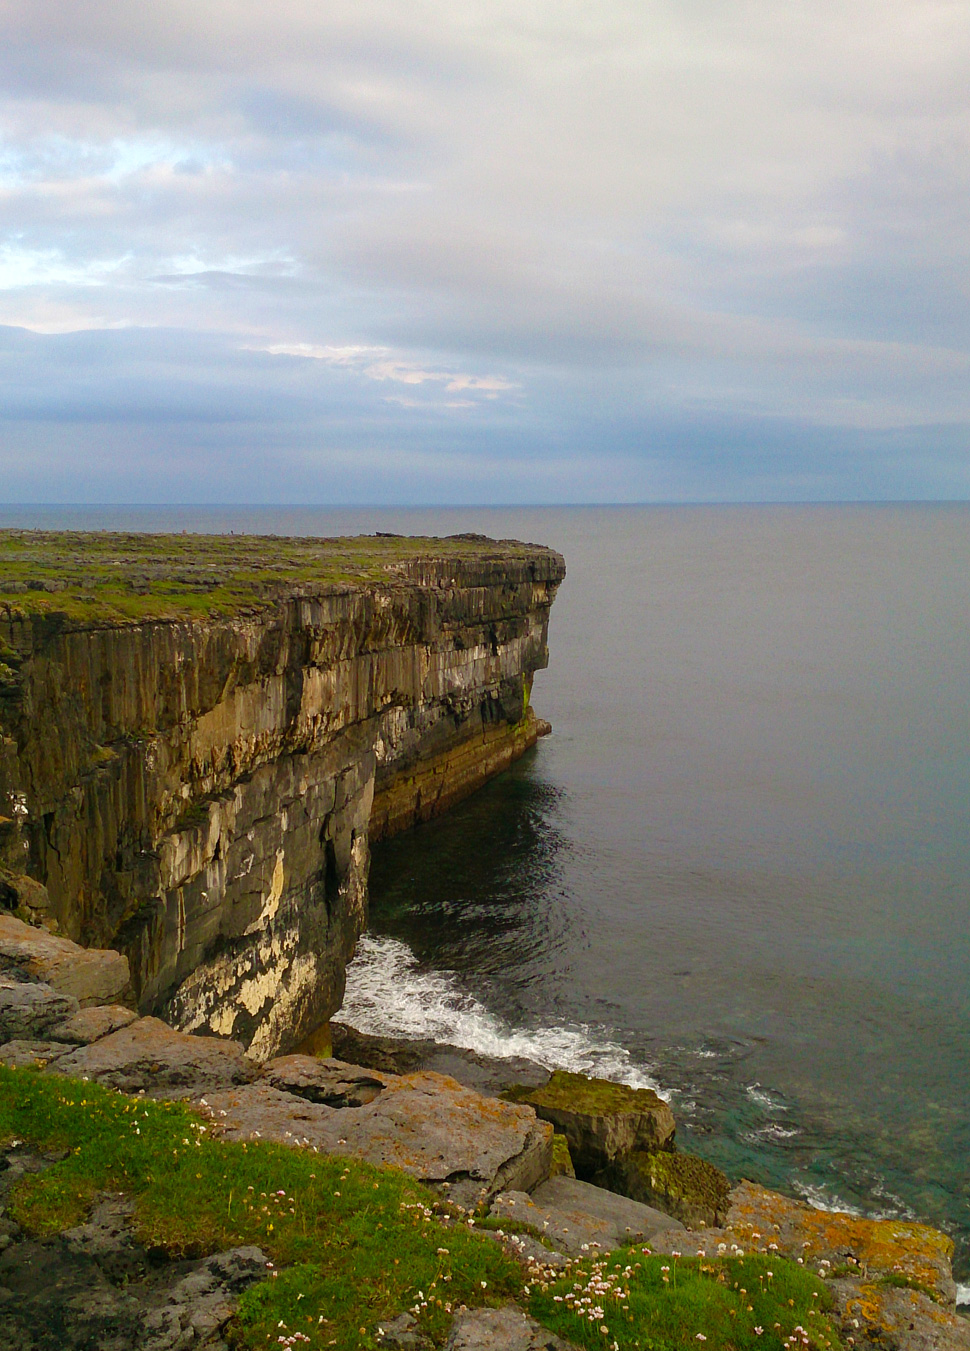 Atlantic cliffs on Inishmore, Aran Islands